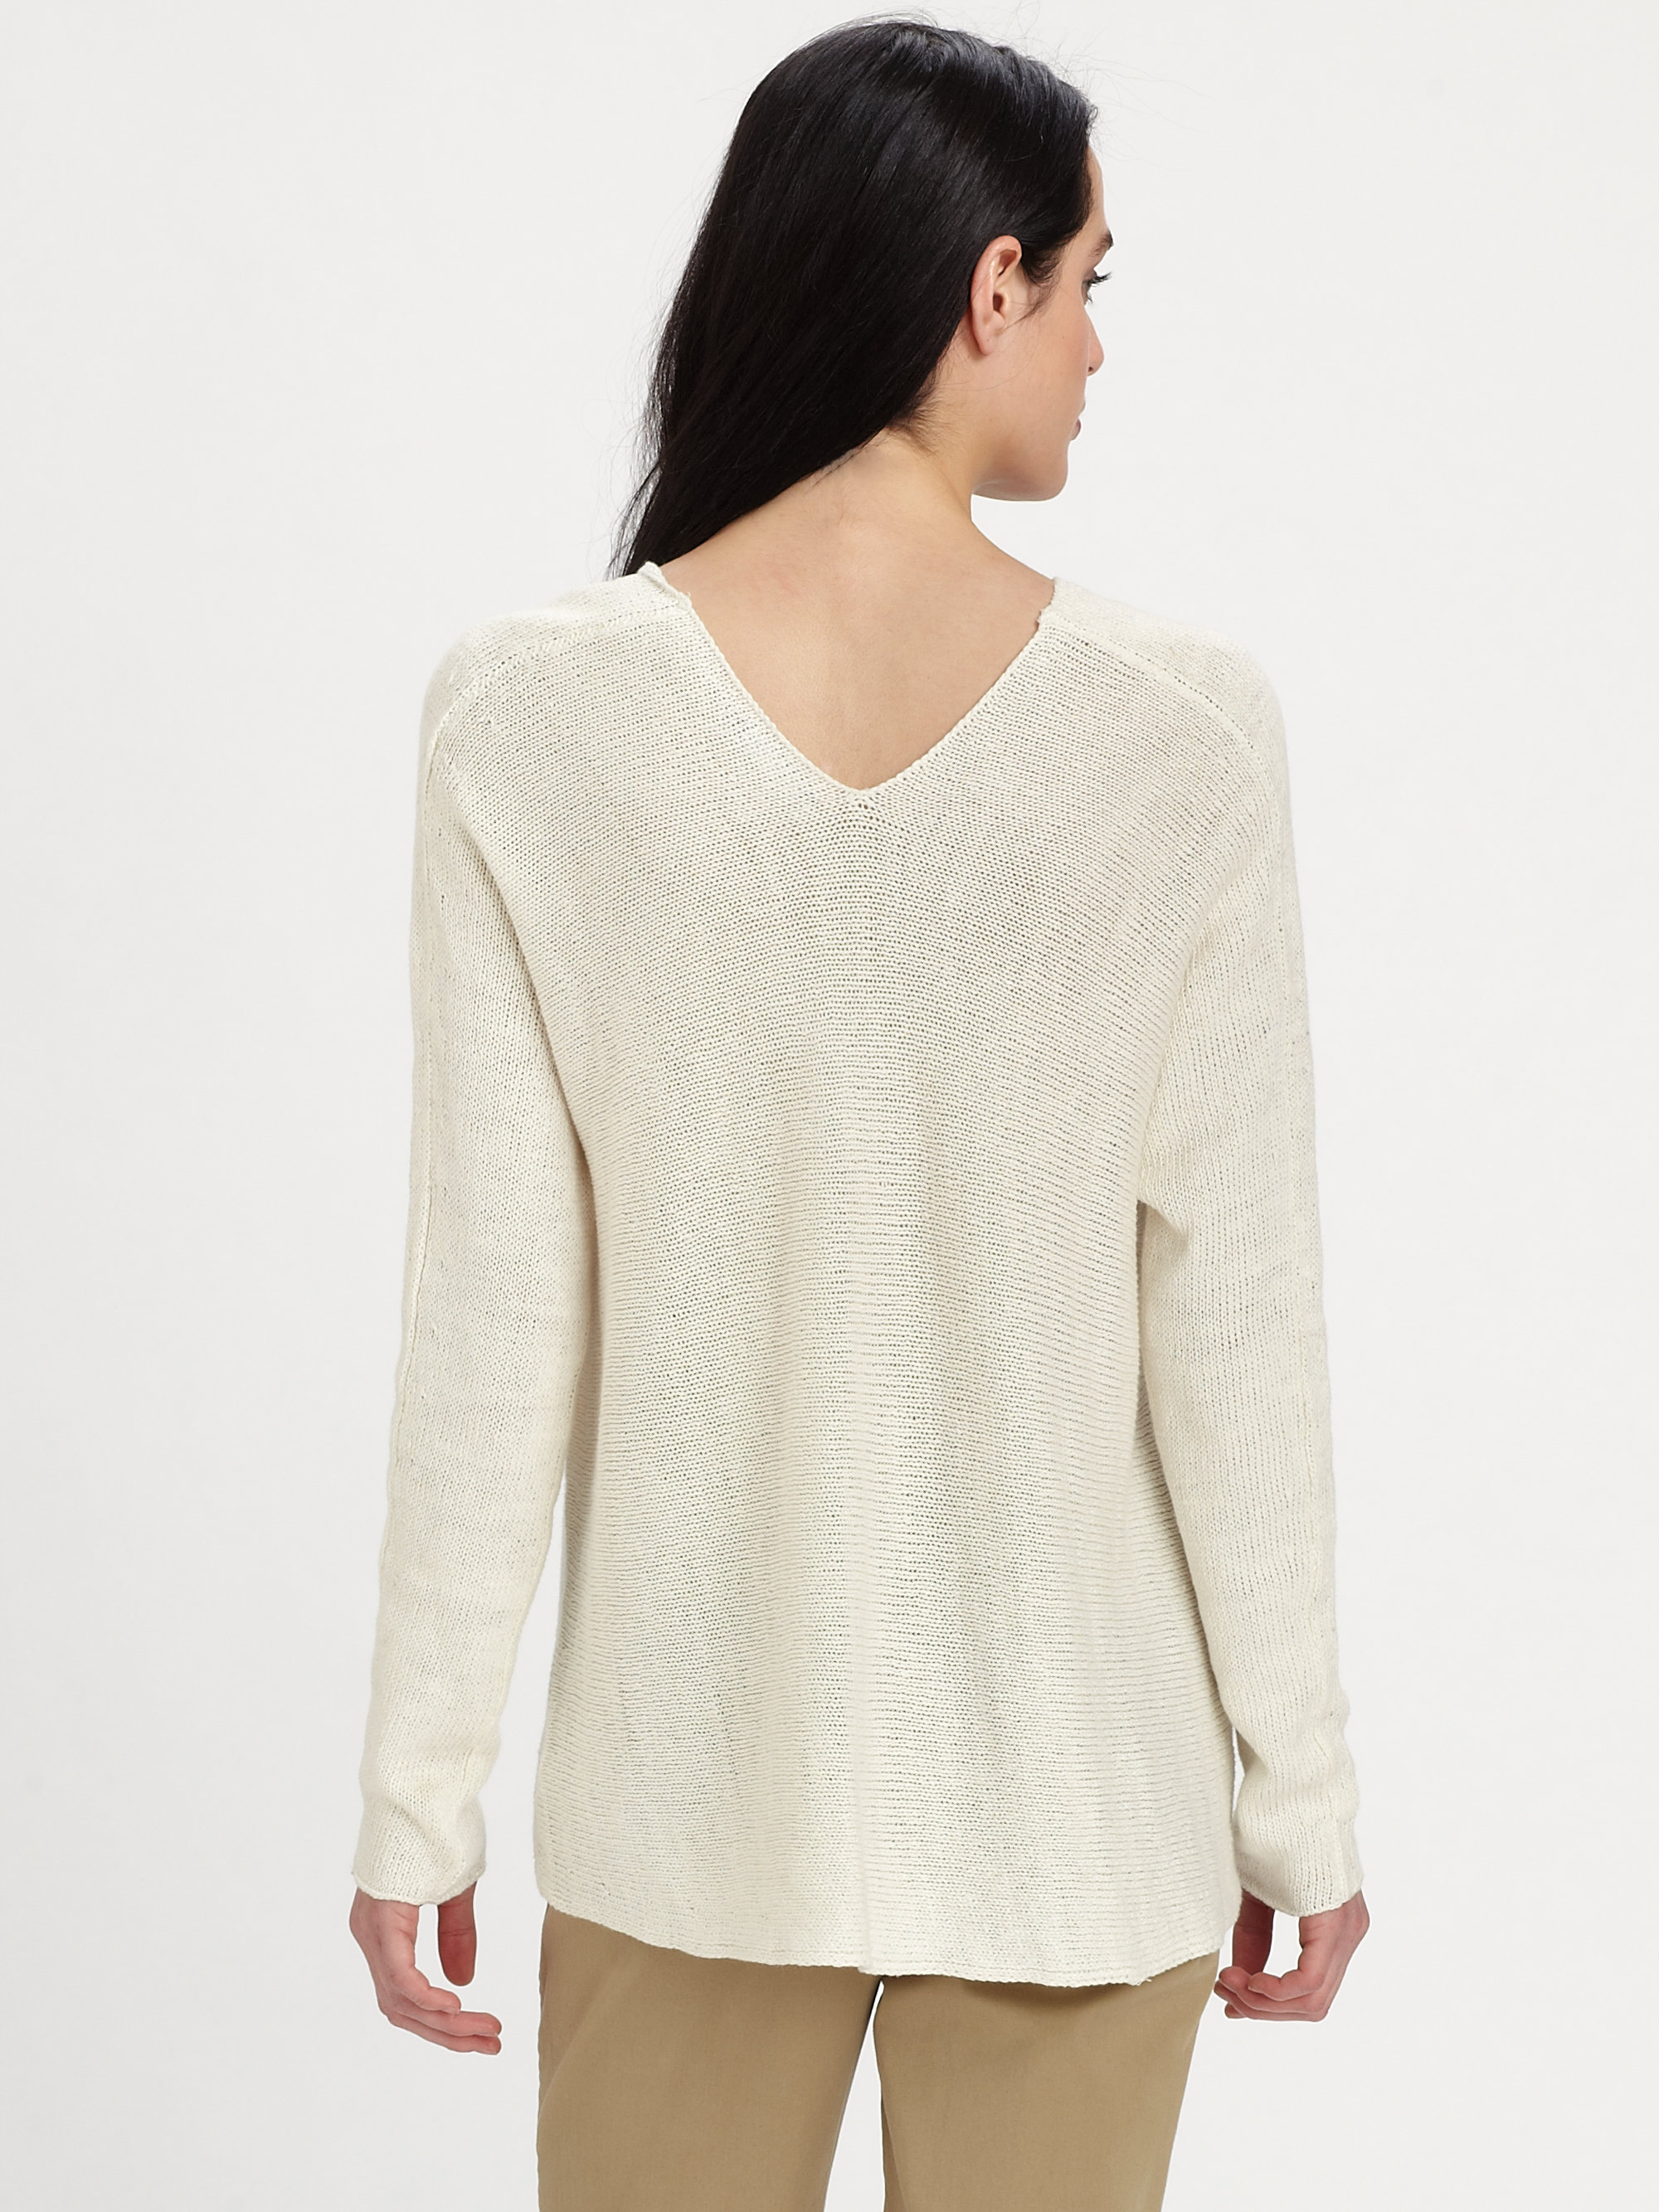 Vince Linen Sweater In White Lyst